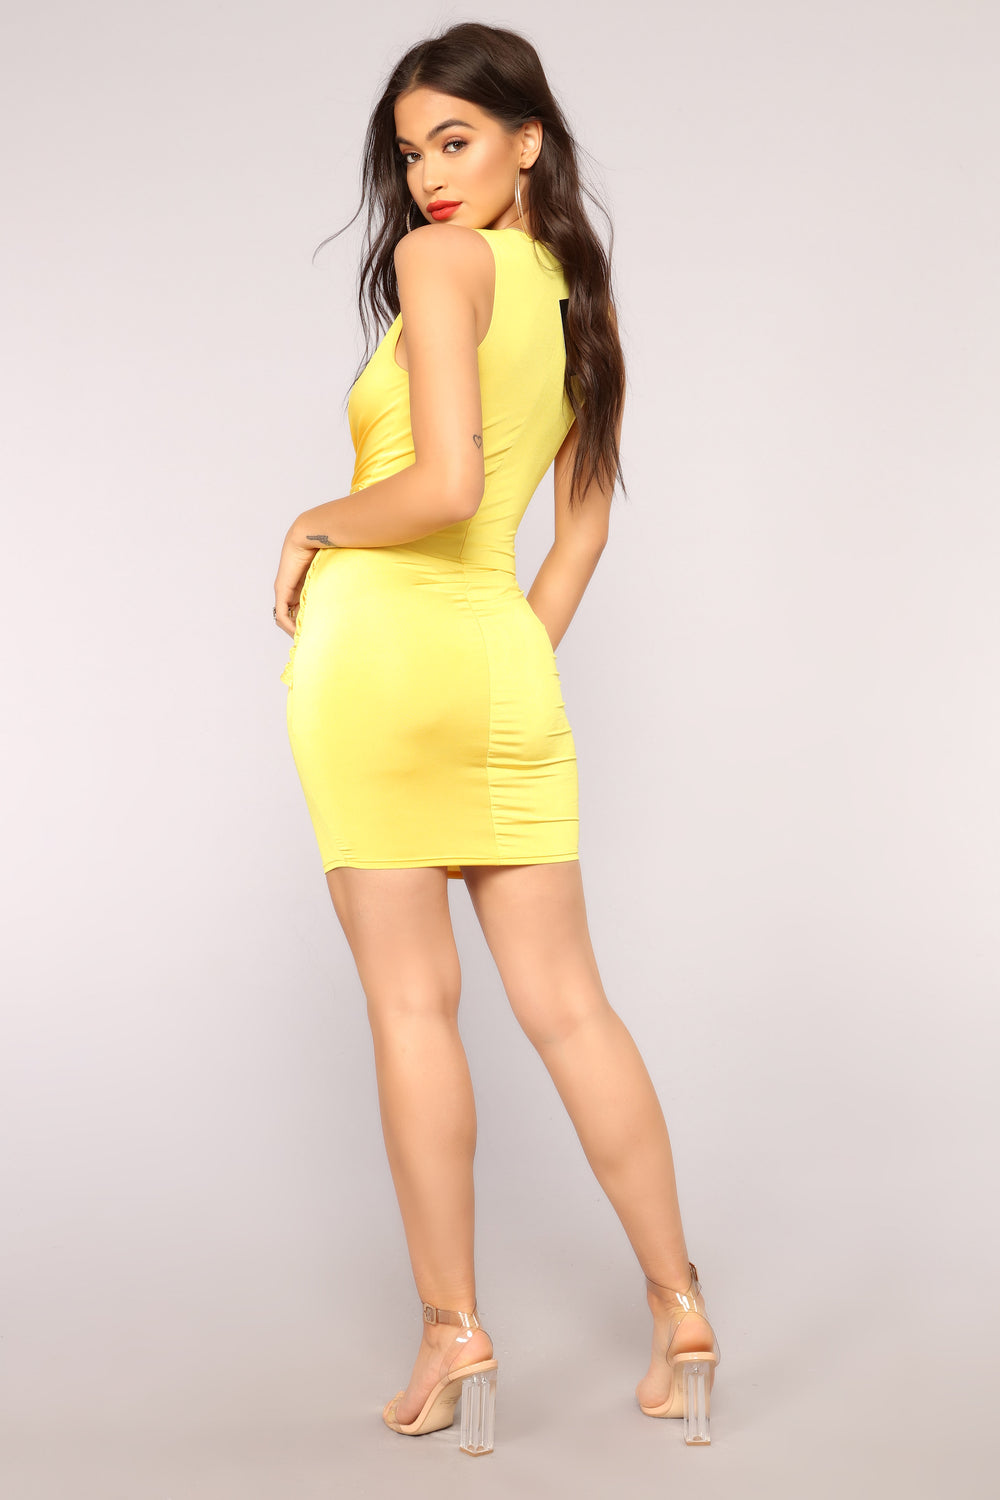 Isn't Life Wonderful Dress - Yellow